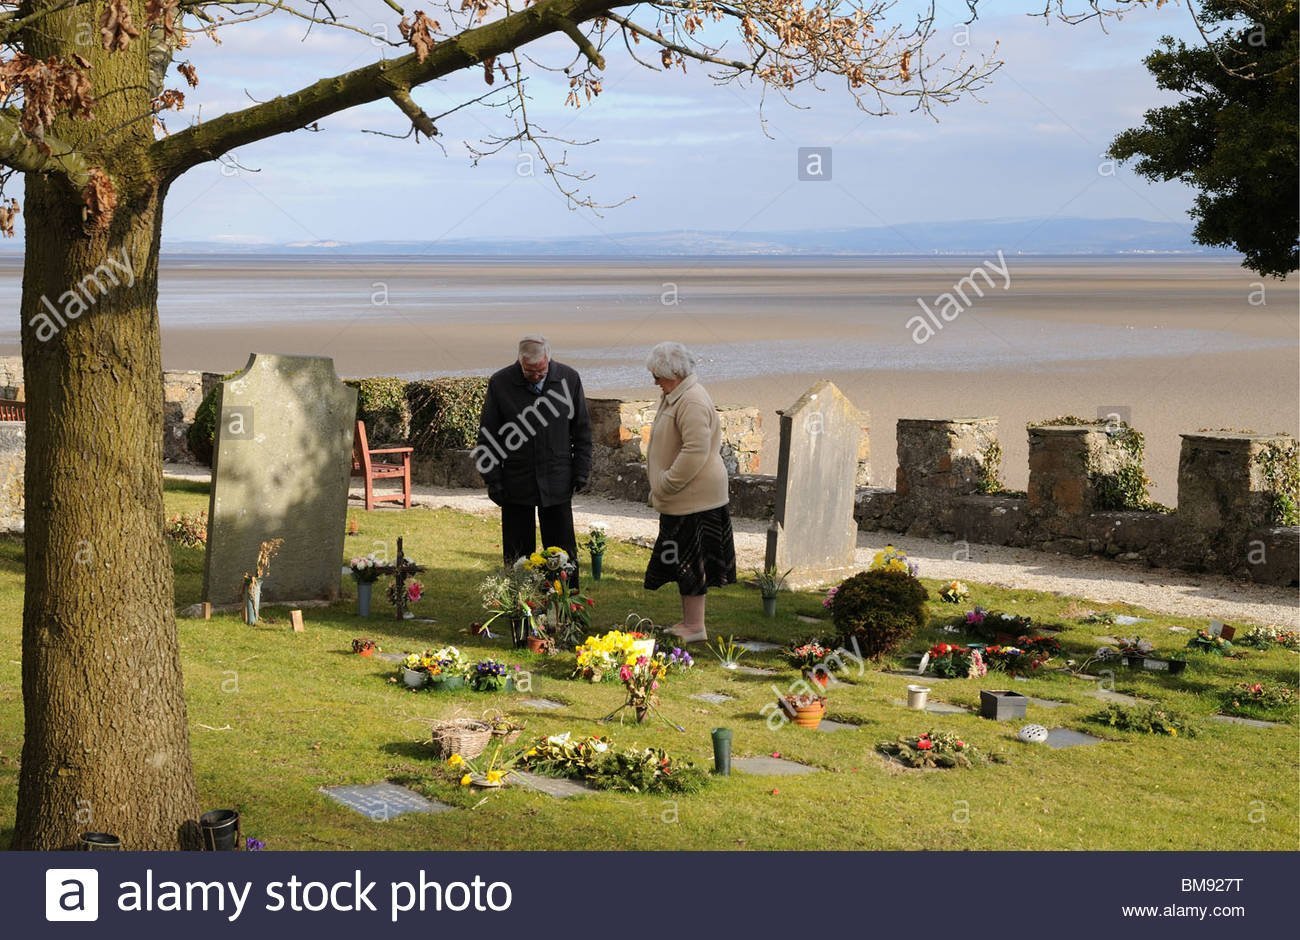 Elderly couple grieving at graveside in graveyard of St Cuthberts 1300x940